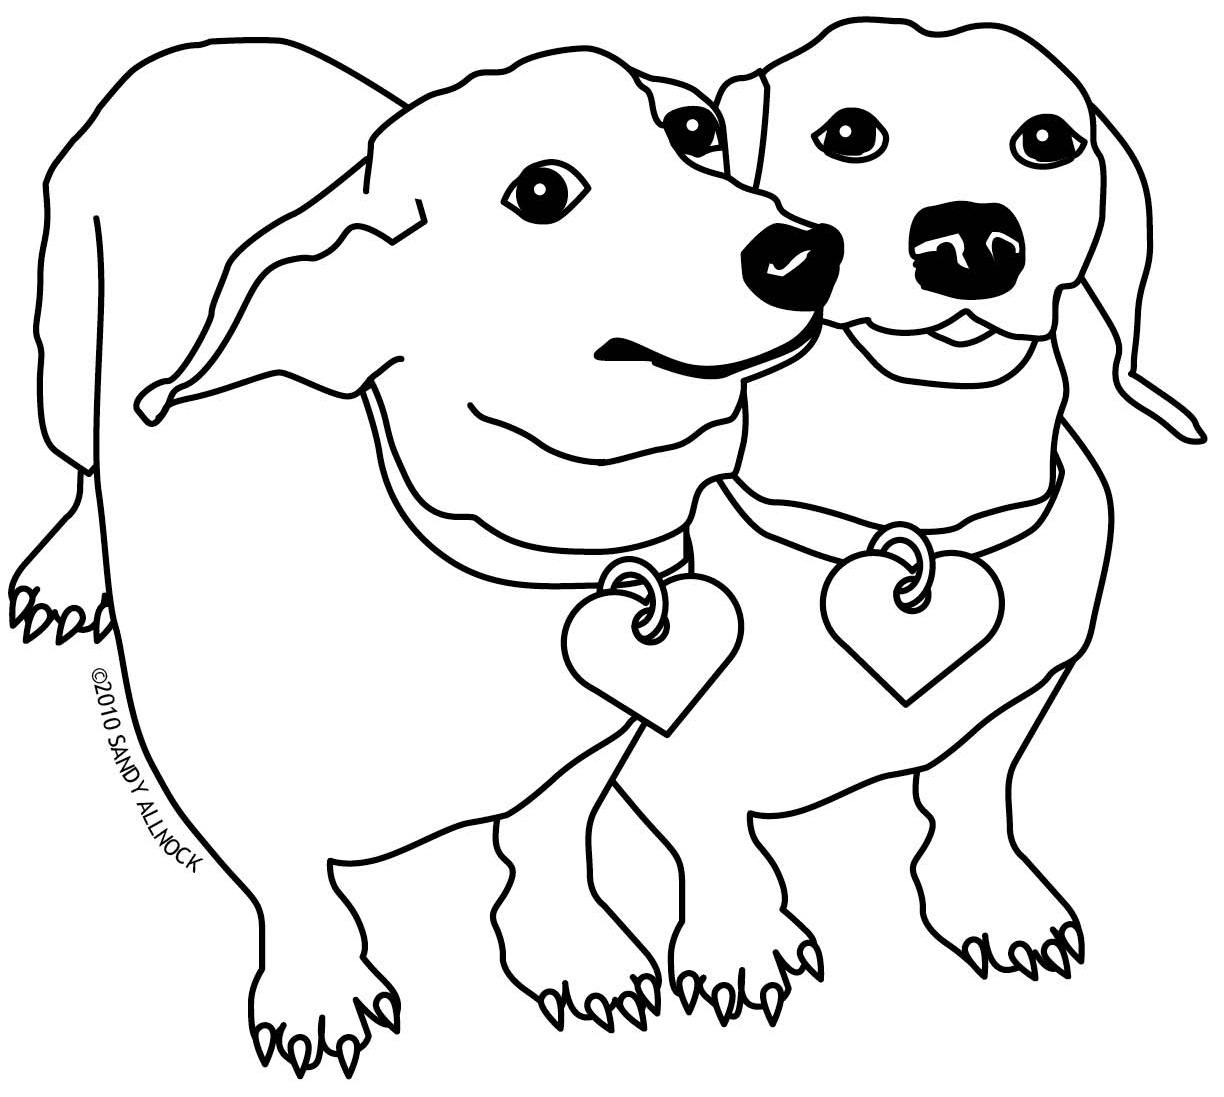 weiner dog coloring pages weiner dog drawing free download on clipartmag weiner dog coloring pages